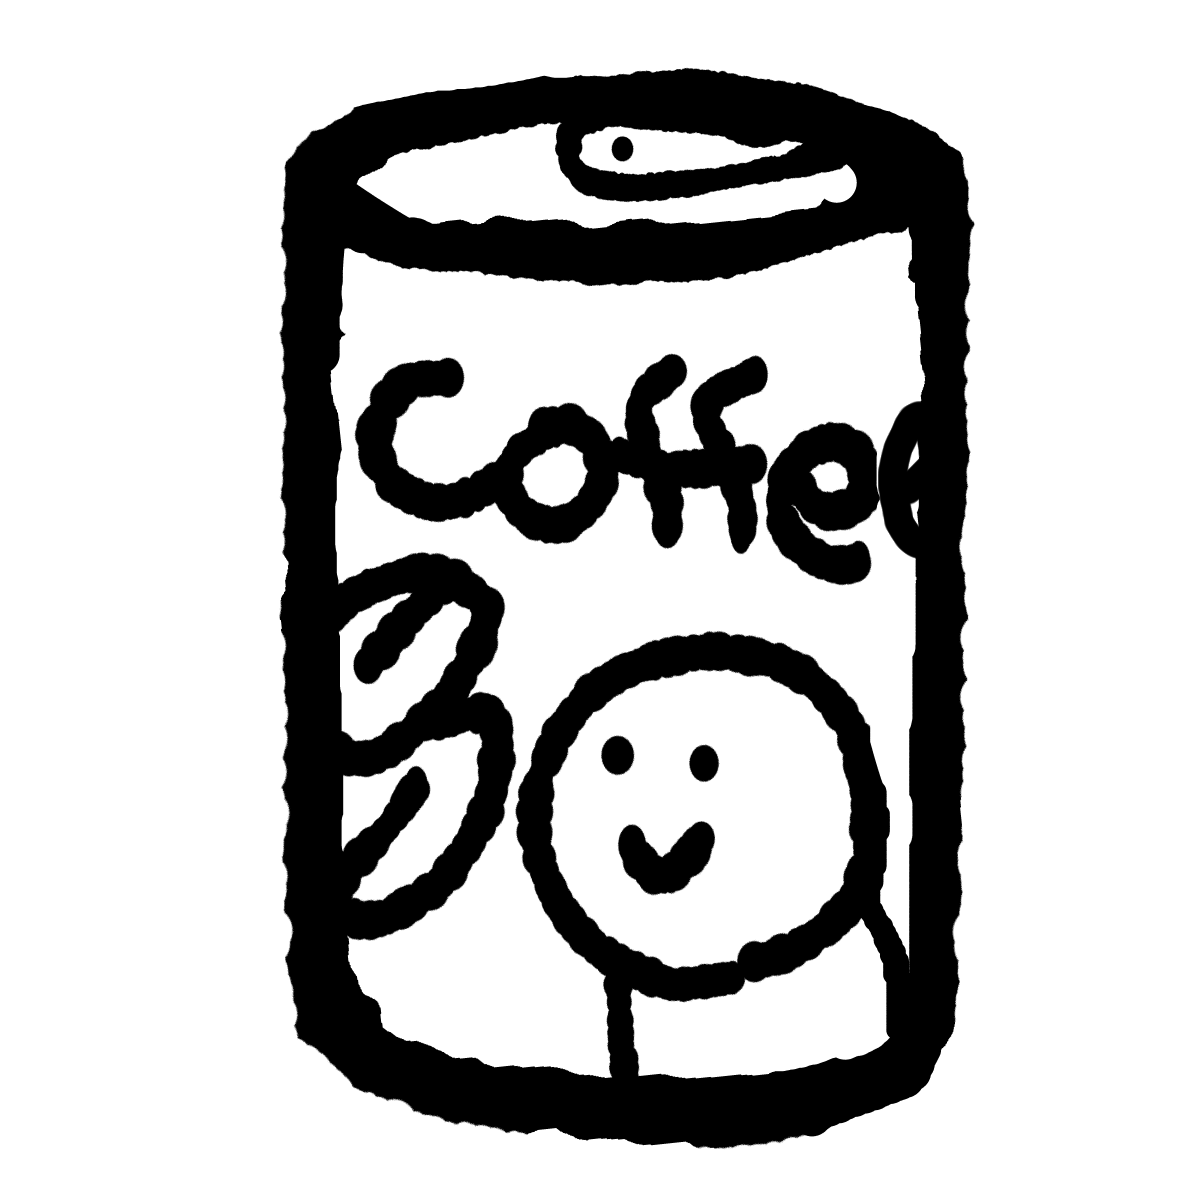 缶コーヒーのイラスト / Canned coffee Illustration